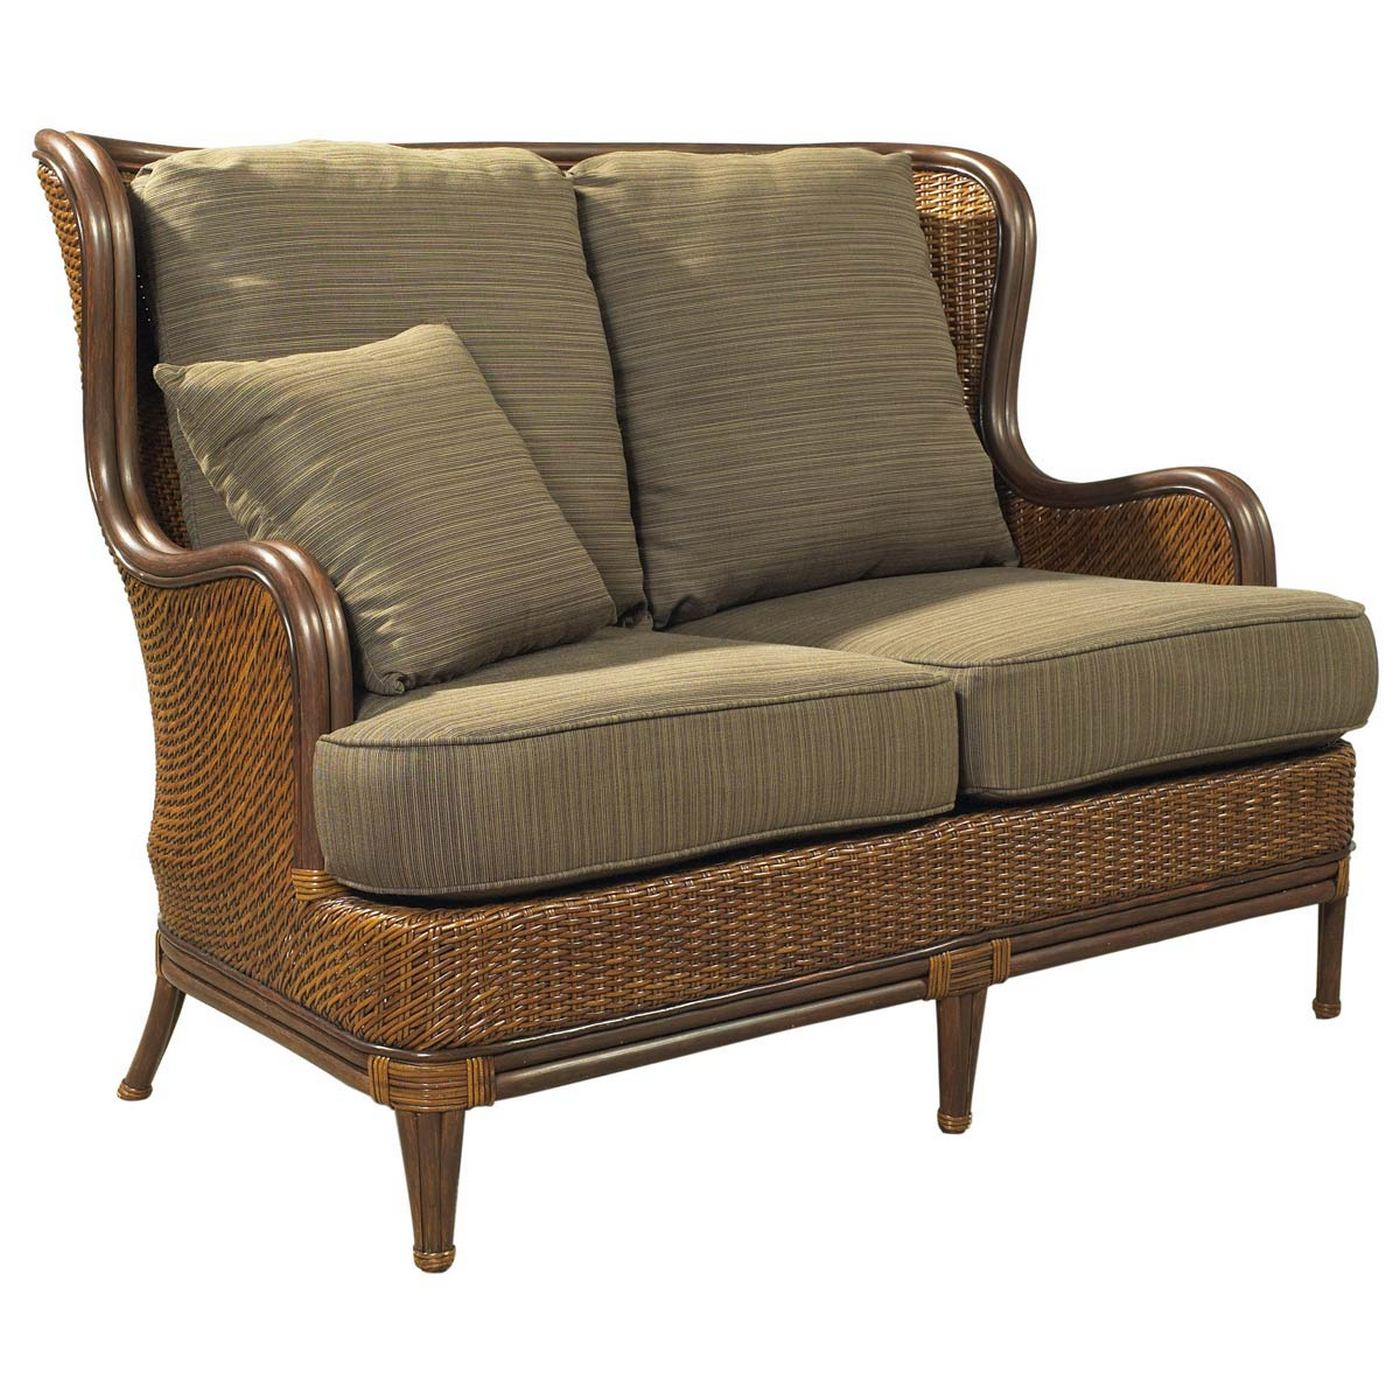 Padmau0027s Plantation Outdoor Palm Beach Loveseat In Natural Antique